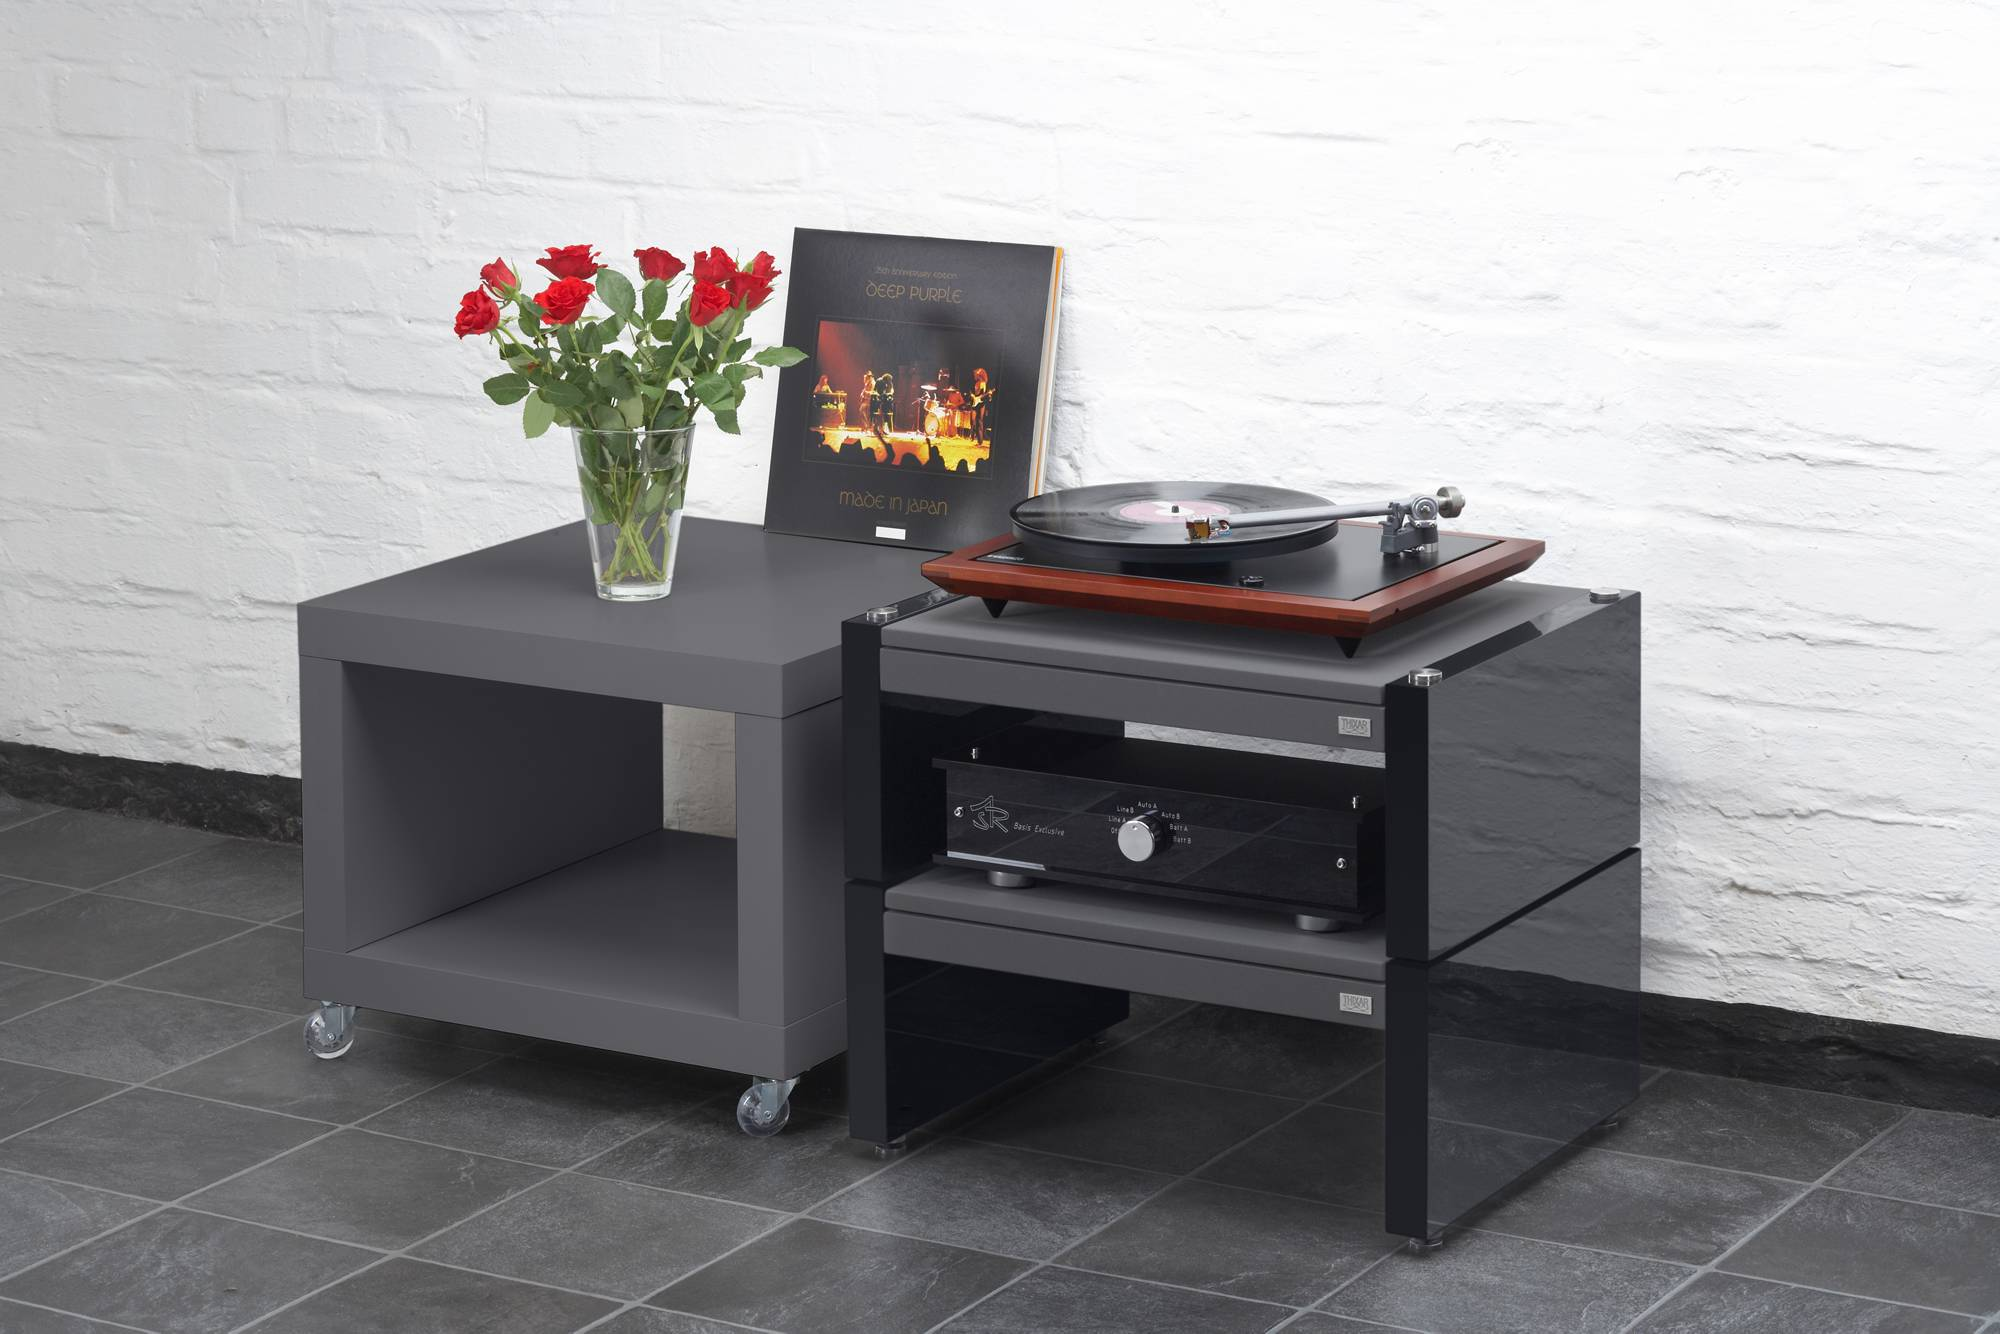 smd ultimate audiophile hifi rack thixar. Black Bedroom Furniture Sets. Home Design Ideas